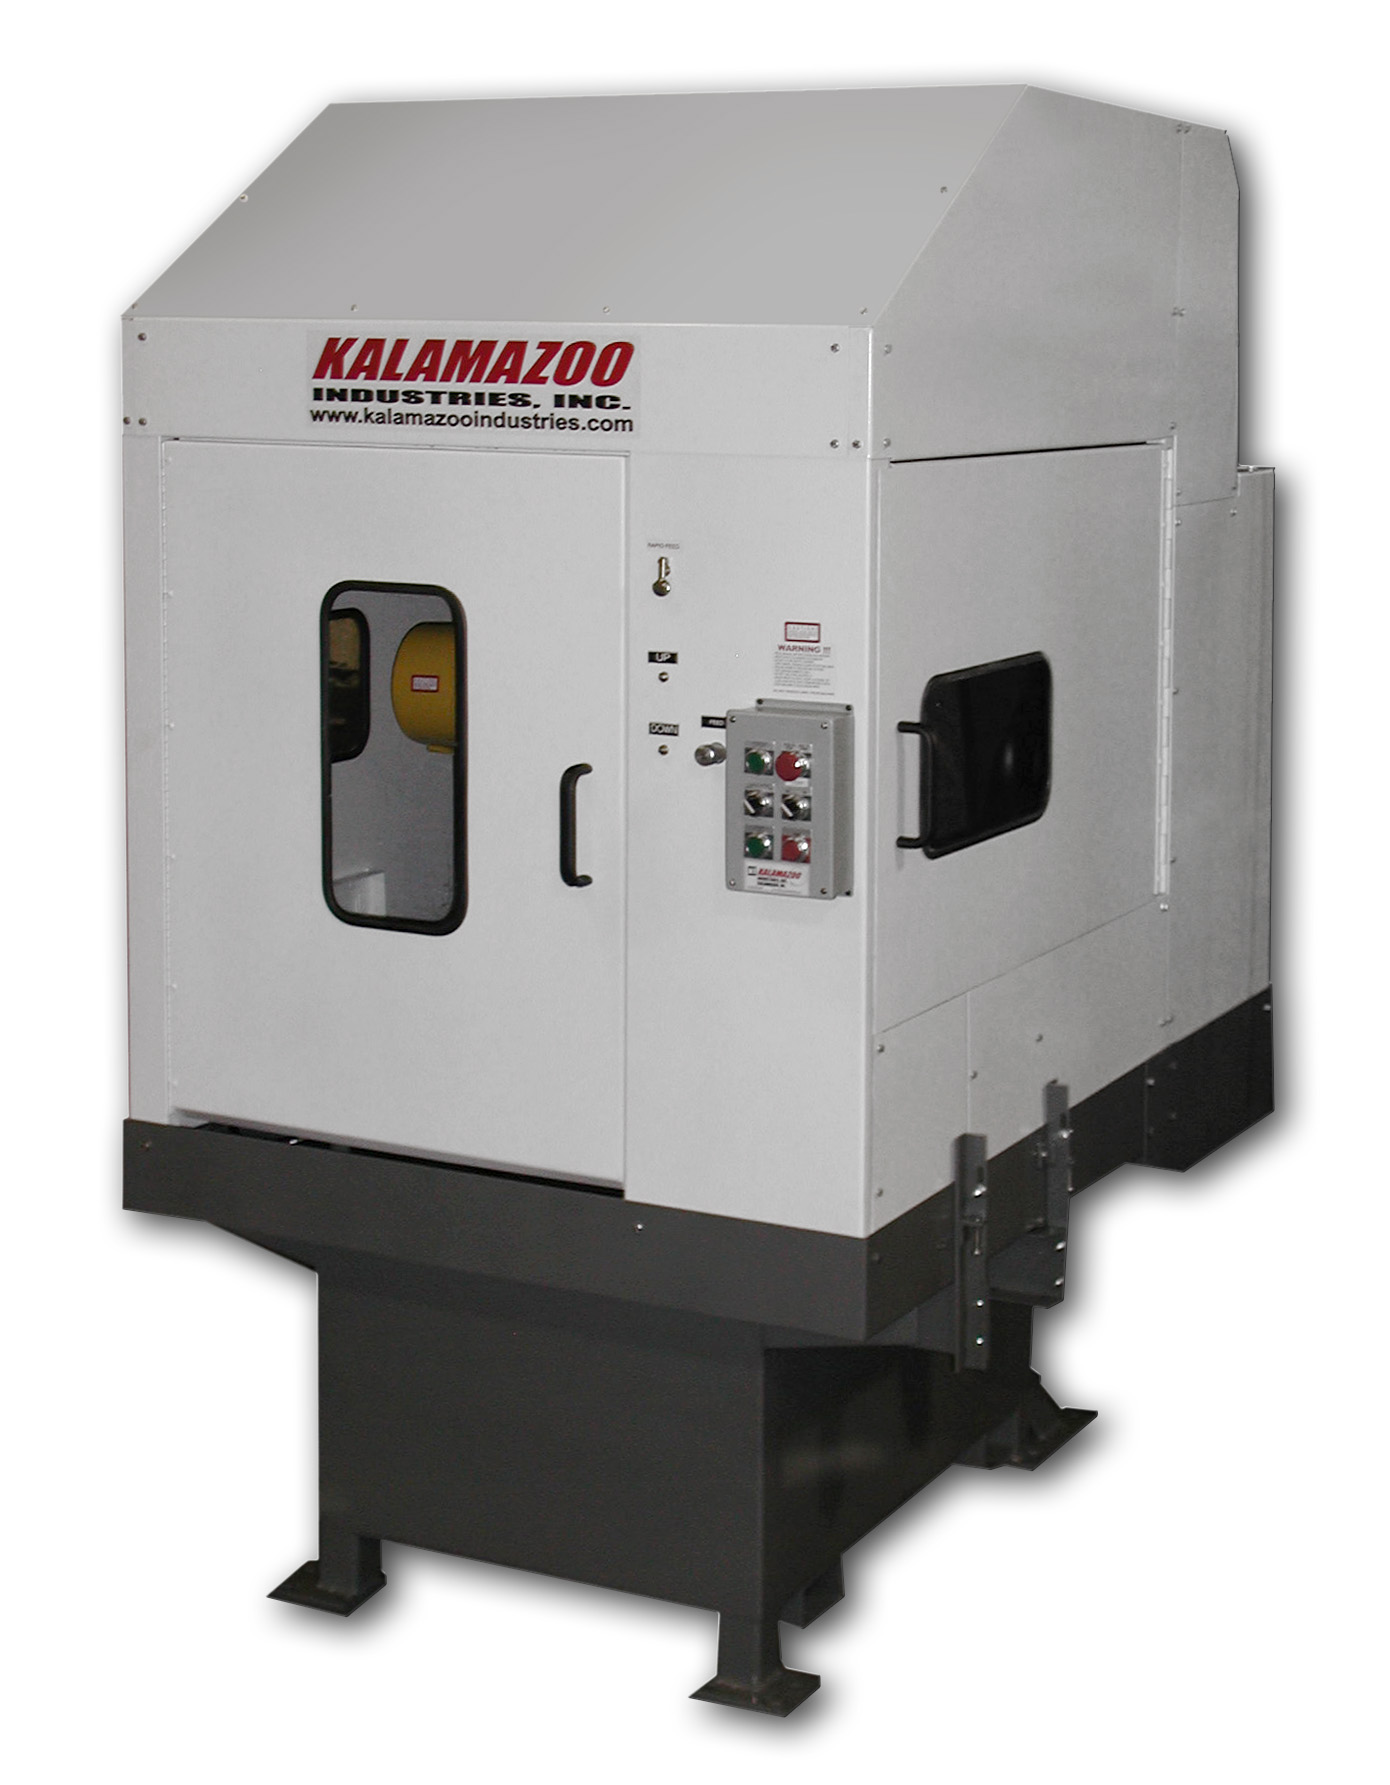 K26E 26 Inch Enclosed Wet Abrasive Cutoff Saw, cutoff saw, chop saw, wet abrasive cutoff saw, Kalamazoo Industries offers many different size abrasive chop saws, different size abrasive chop saws, abrasive chop saws, industrial chop saws, kalamazoo industries